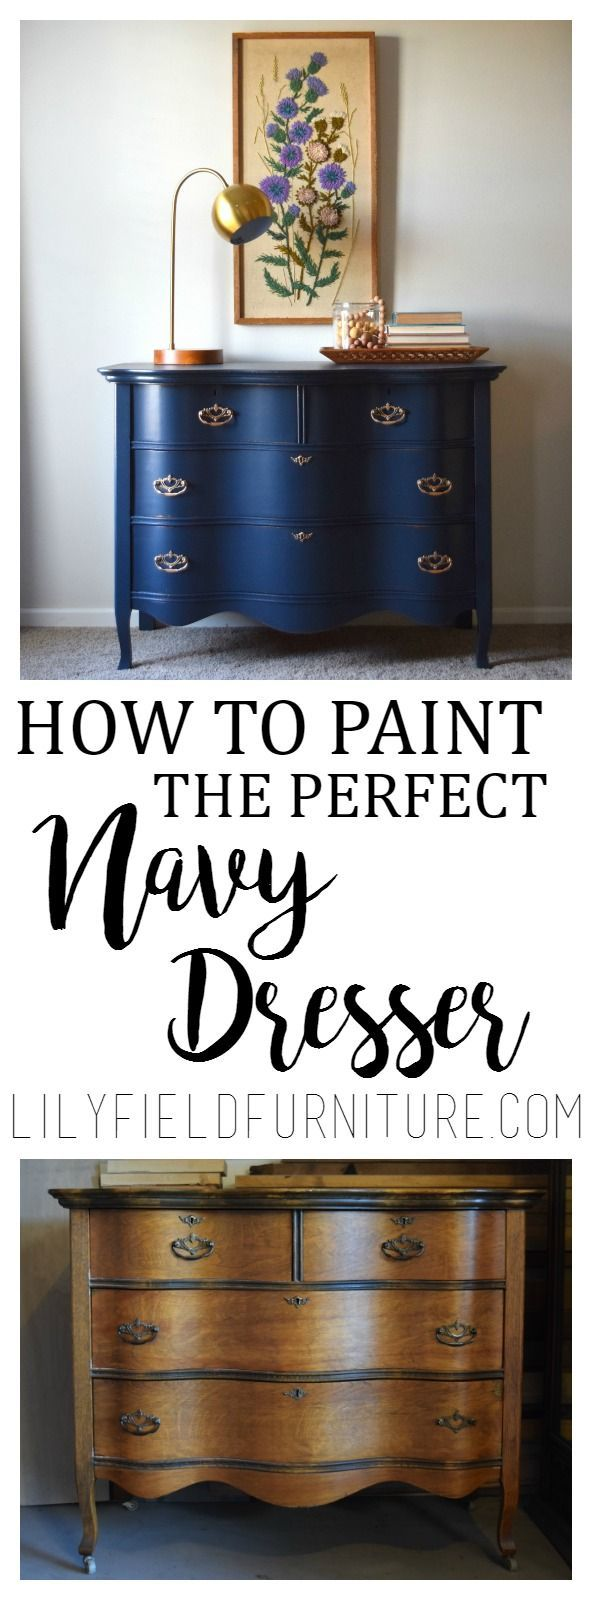 Dresser Makeover- Fusion Midnight Blue Learn how to paint your furniture the perfect navy with this easy to follow tutorial! Warning- you are going to want to paint everything you own!Learn how to paint your furniture the perfect navy with this easy to follow tutorial! Warning- you are going to want to paint everything you own!